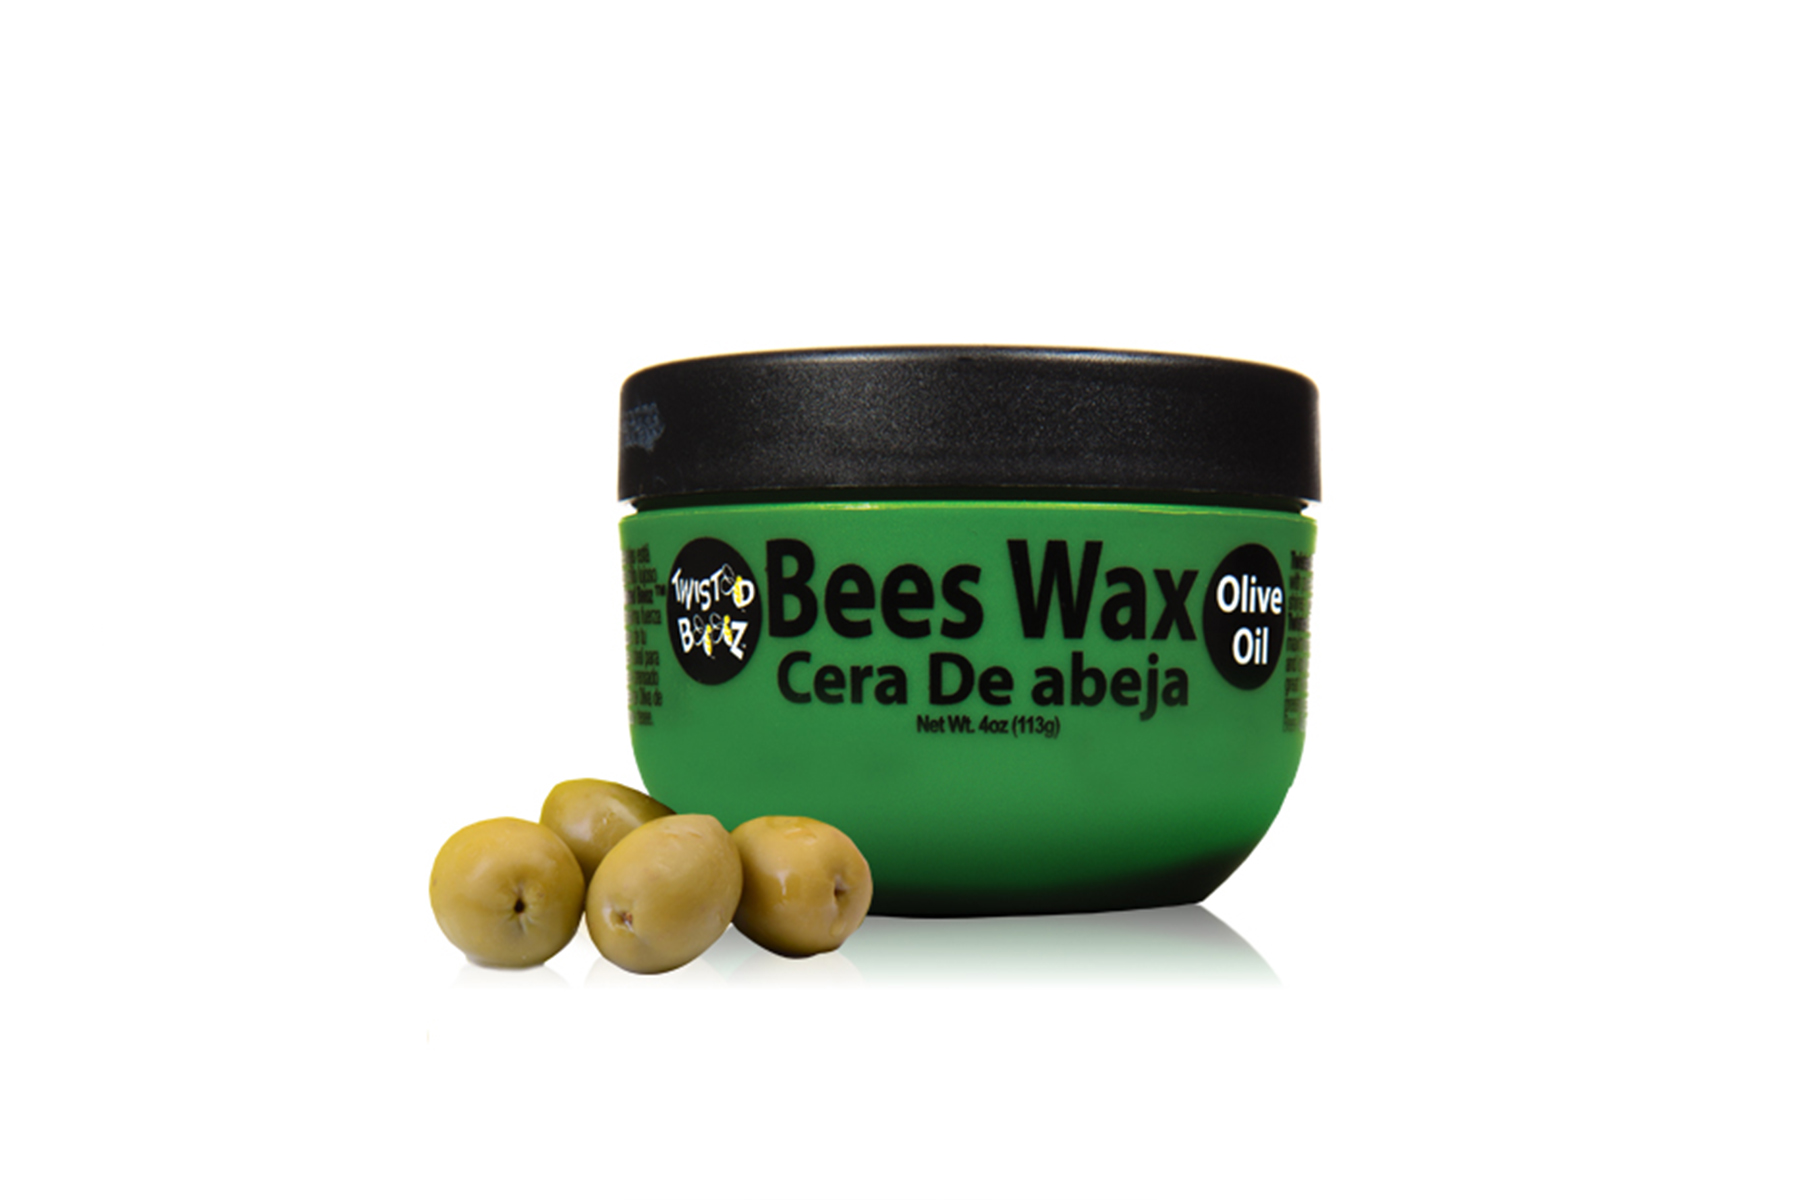 Twisted Beez Olive Oil